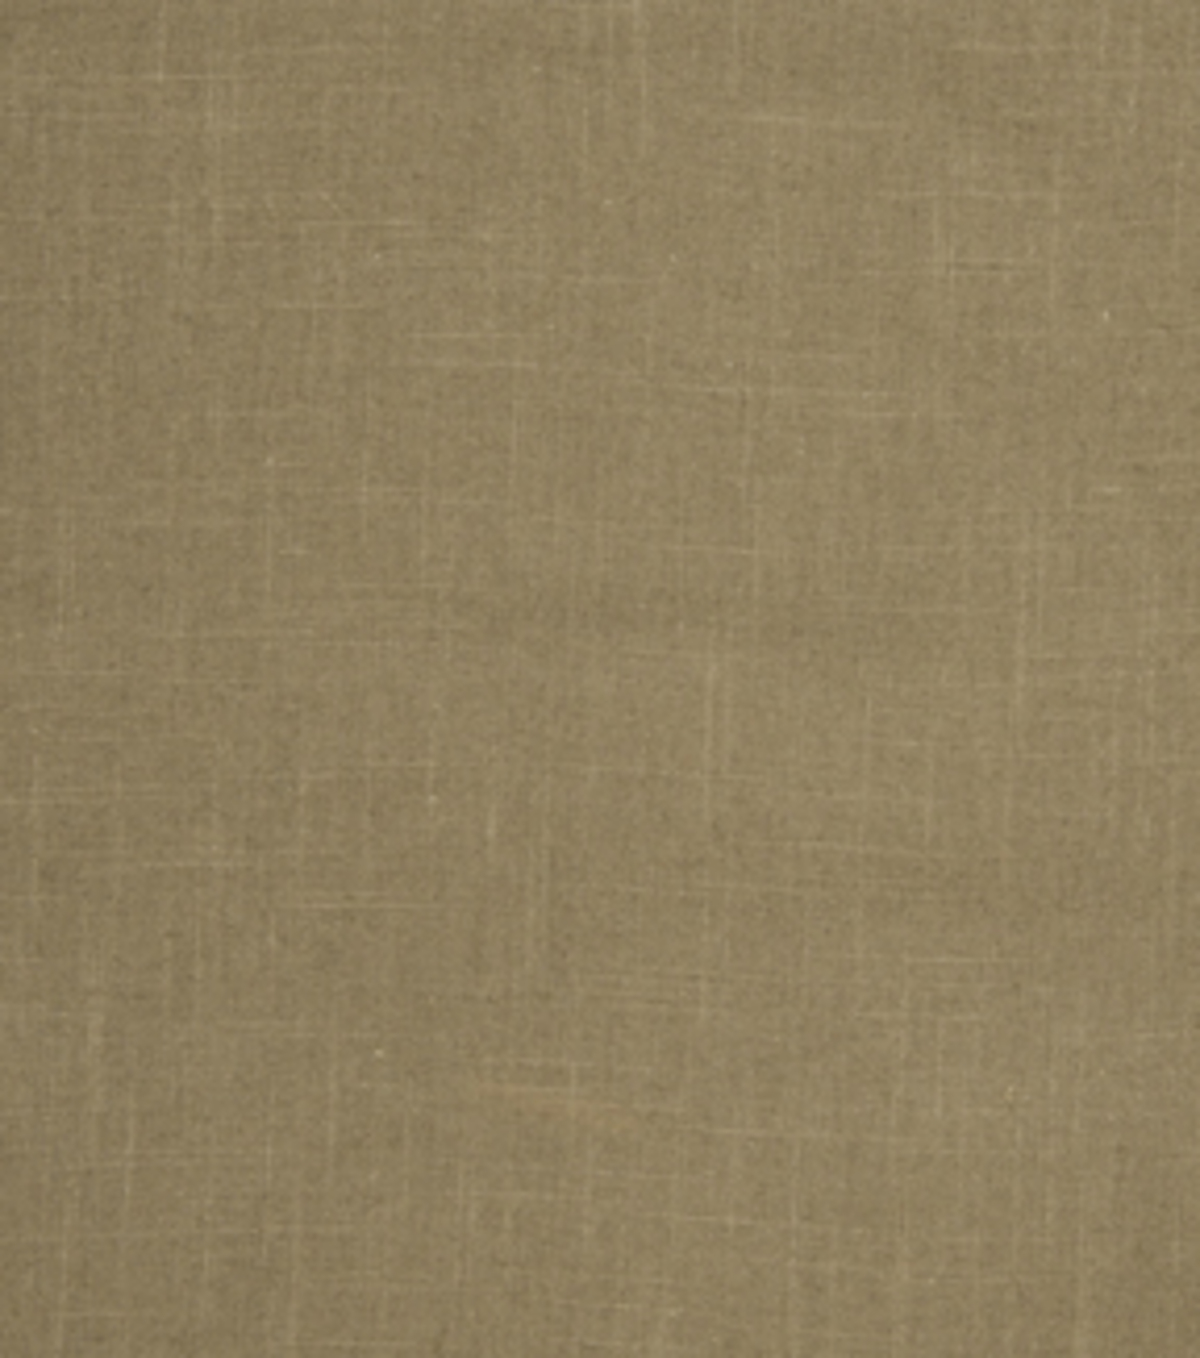 Home Decor 8\u0022x8\u0022 Fabric Swatch-SMC Designs Ohio Morel